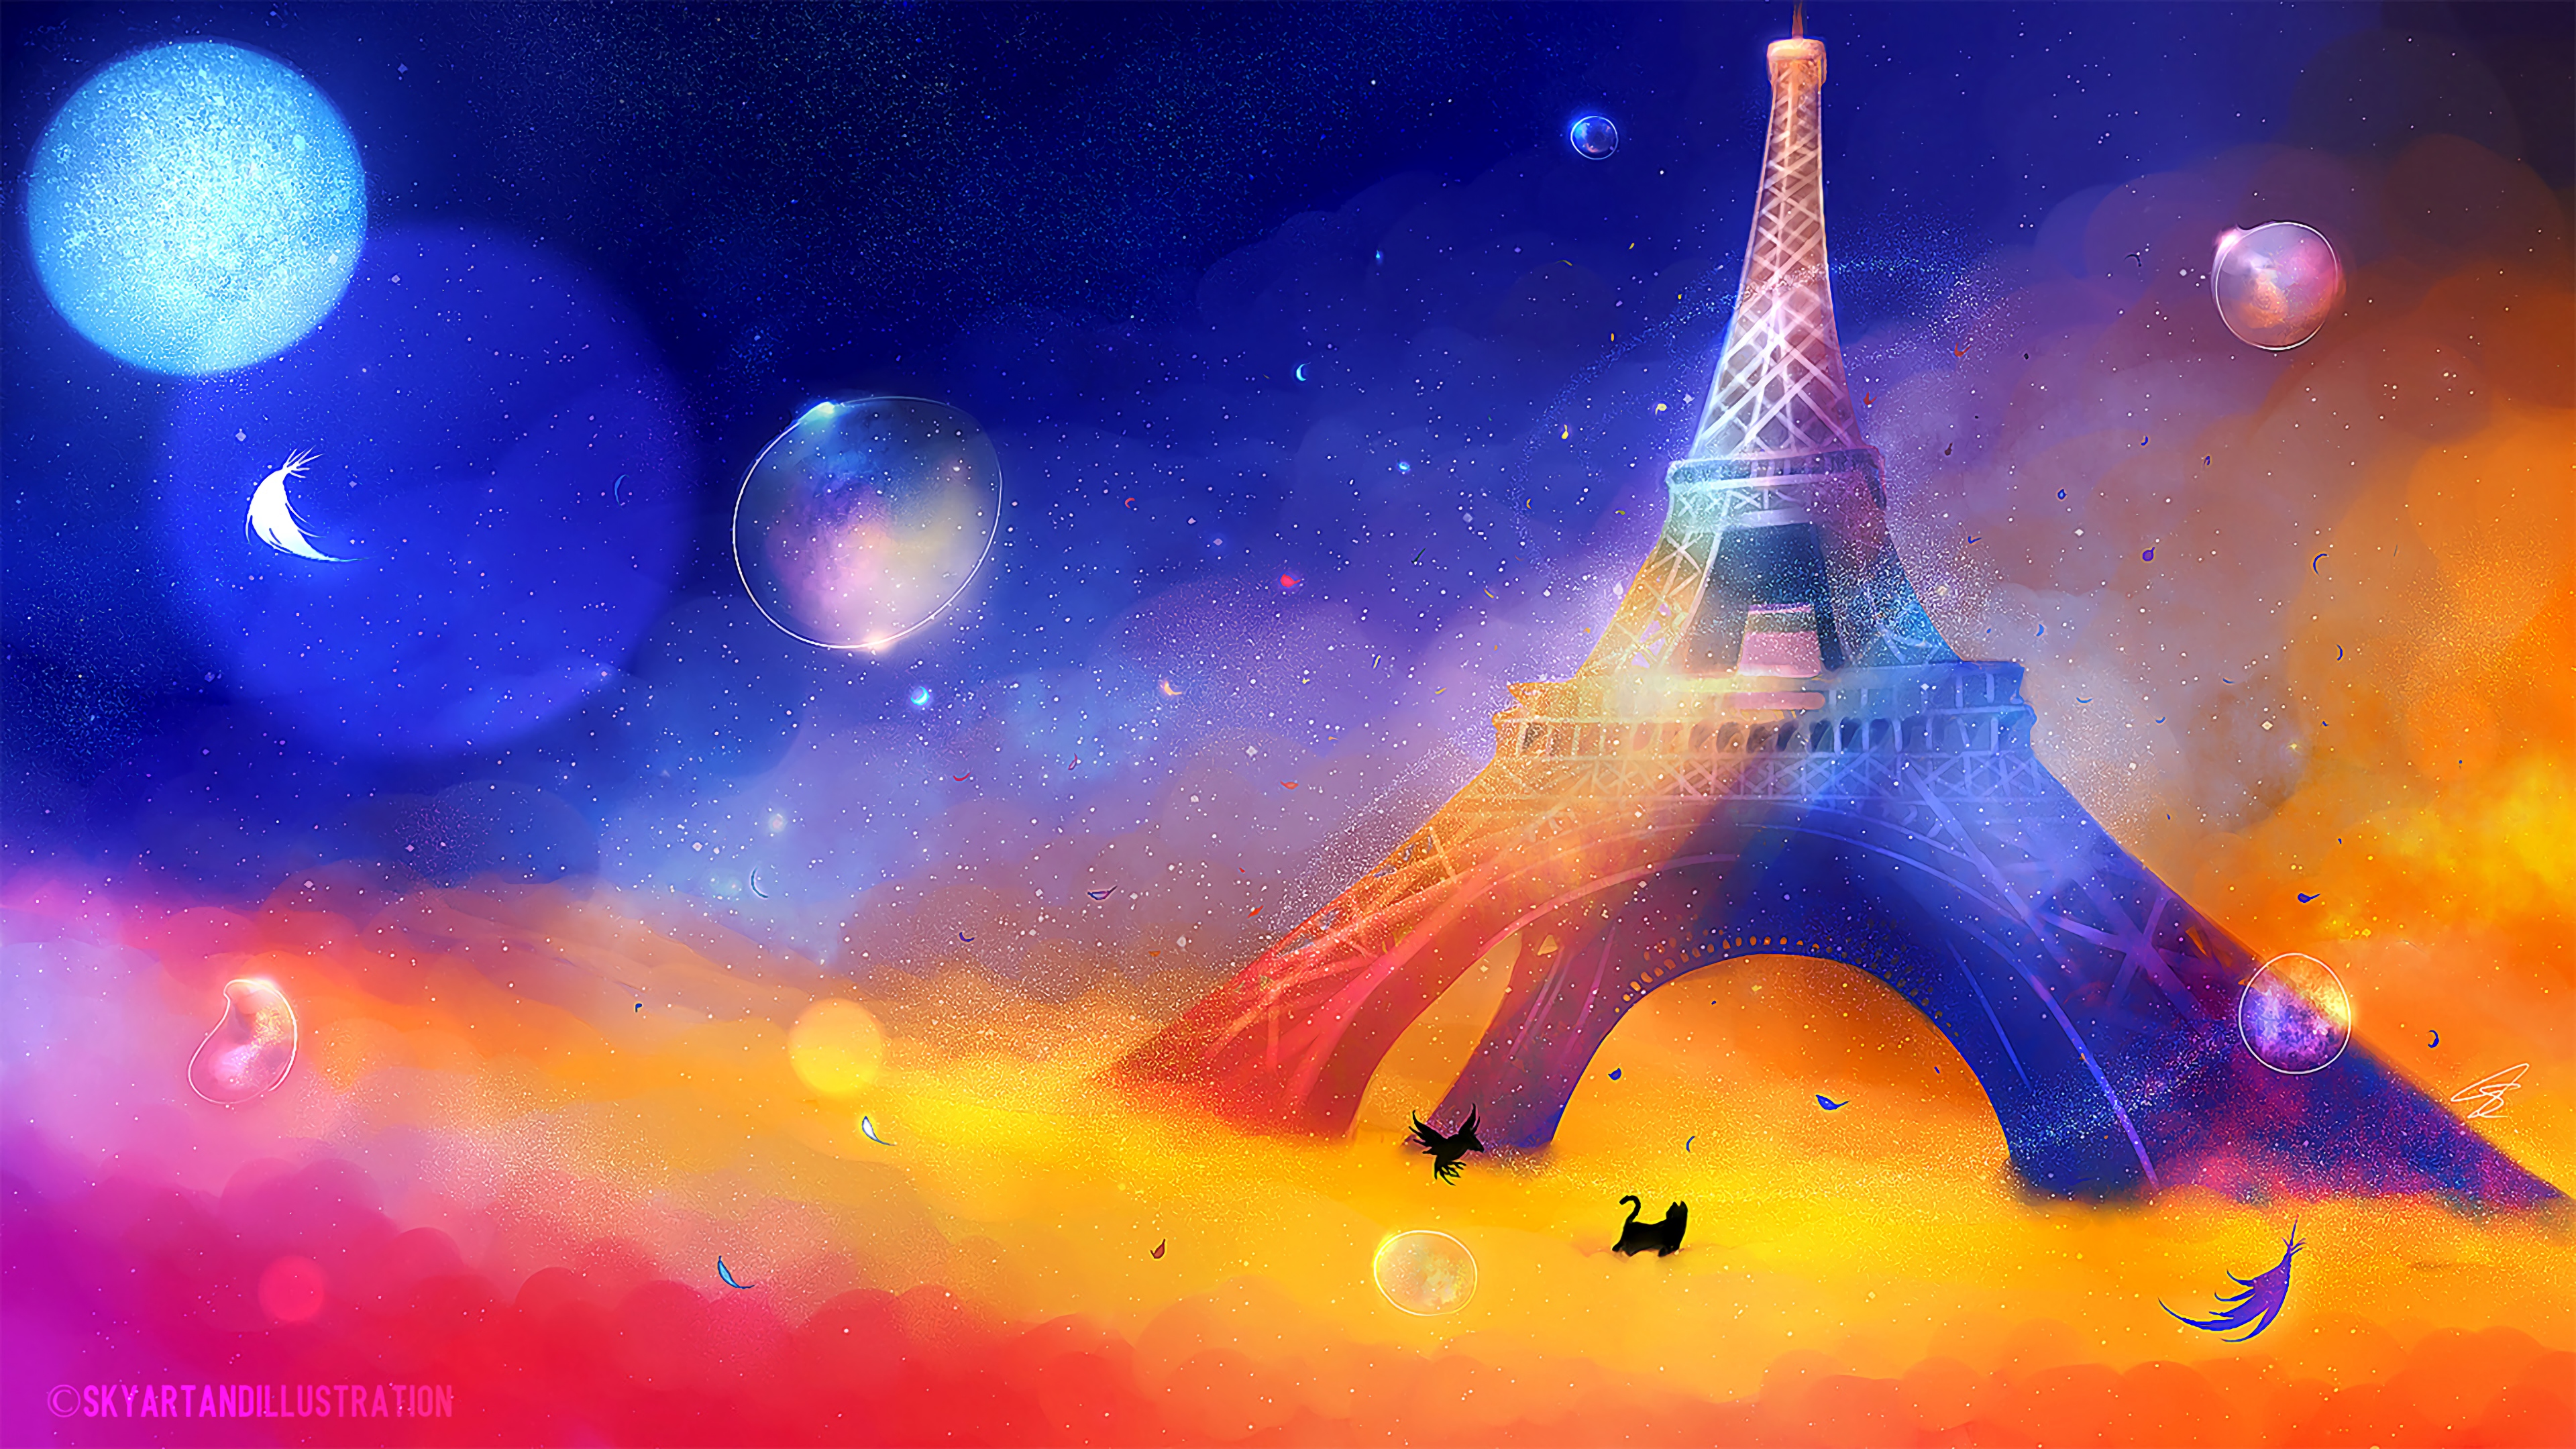 eiffel tower art cat bird colorful 4k 1541971590 - eiffel tower, art, cat, bird, colorful 4k - eiffel tower, Cat, art